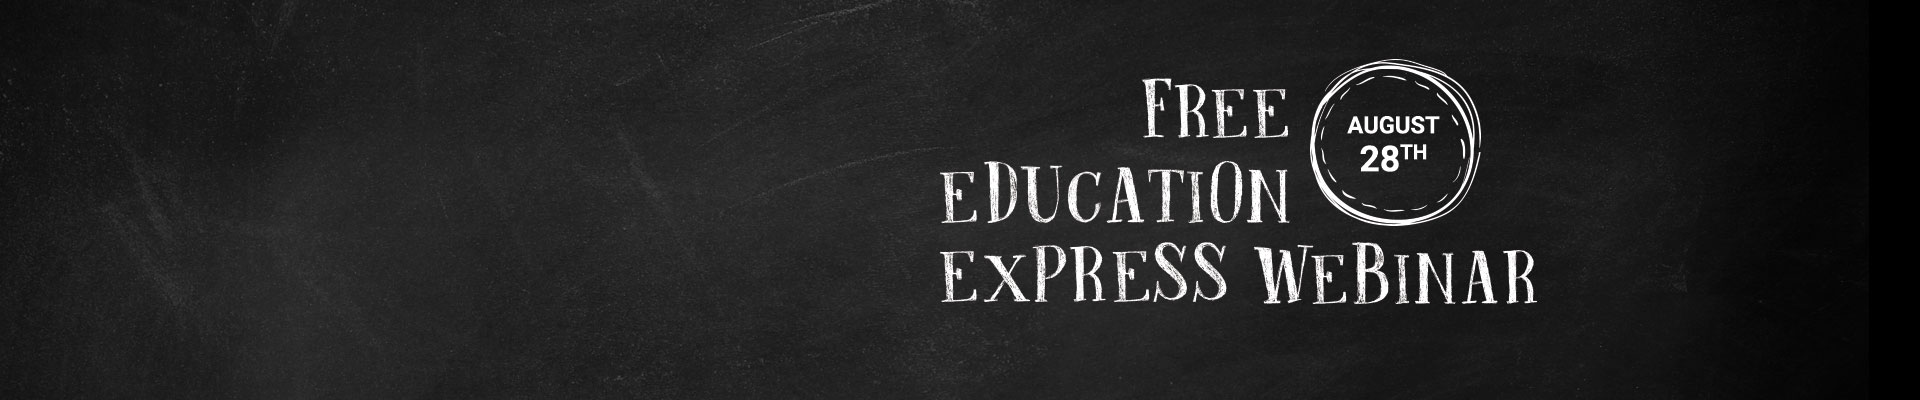 education express webinar banner